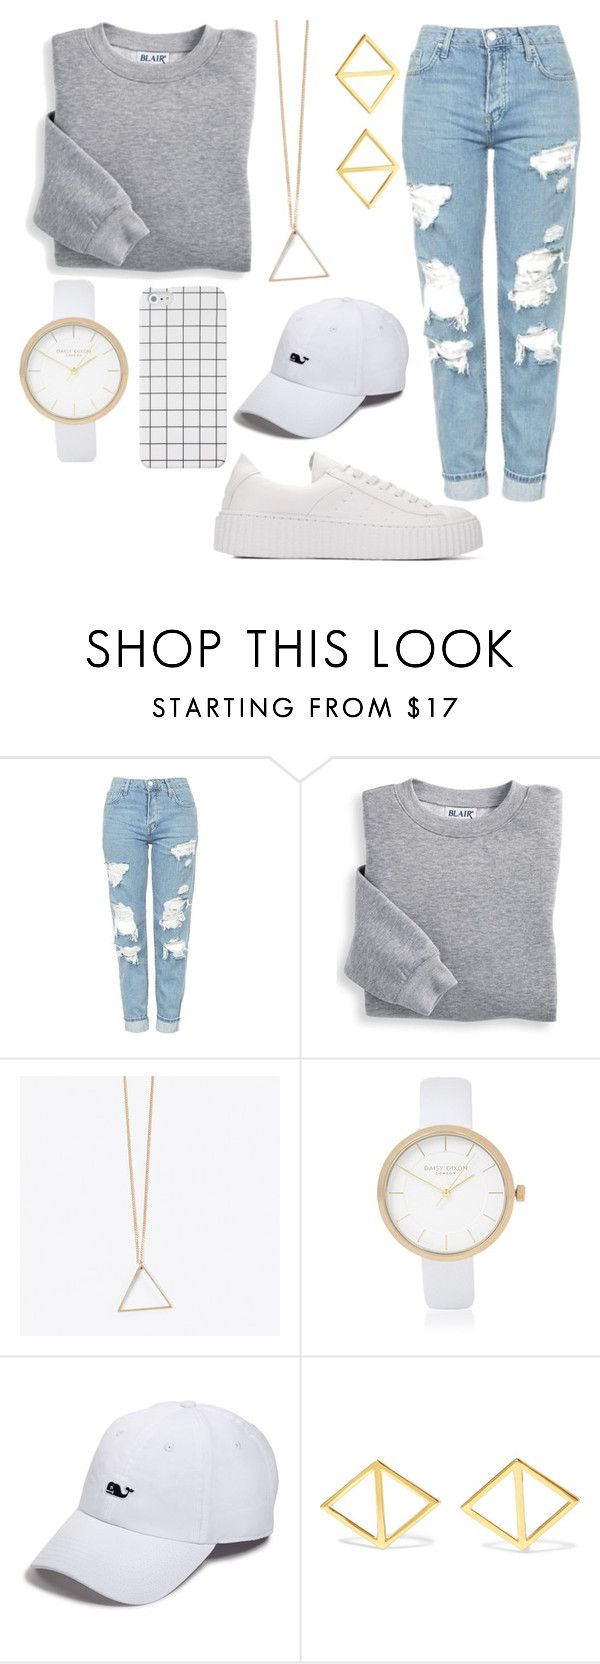 """See you soon"" by walkeralexzandreia ❤ liked on Polyvore featuring Topshop, Blair, River Island, Vineyard Vines and Arme De L'Amour"